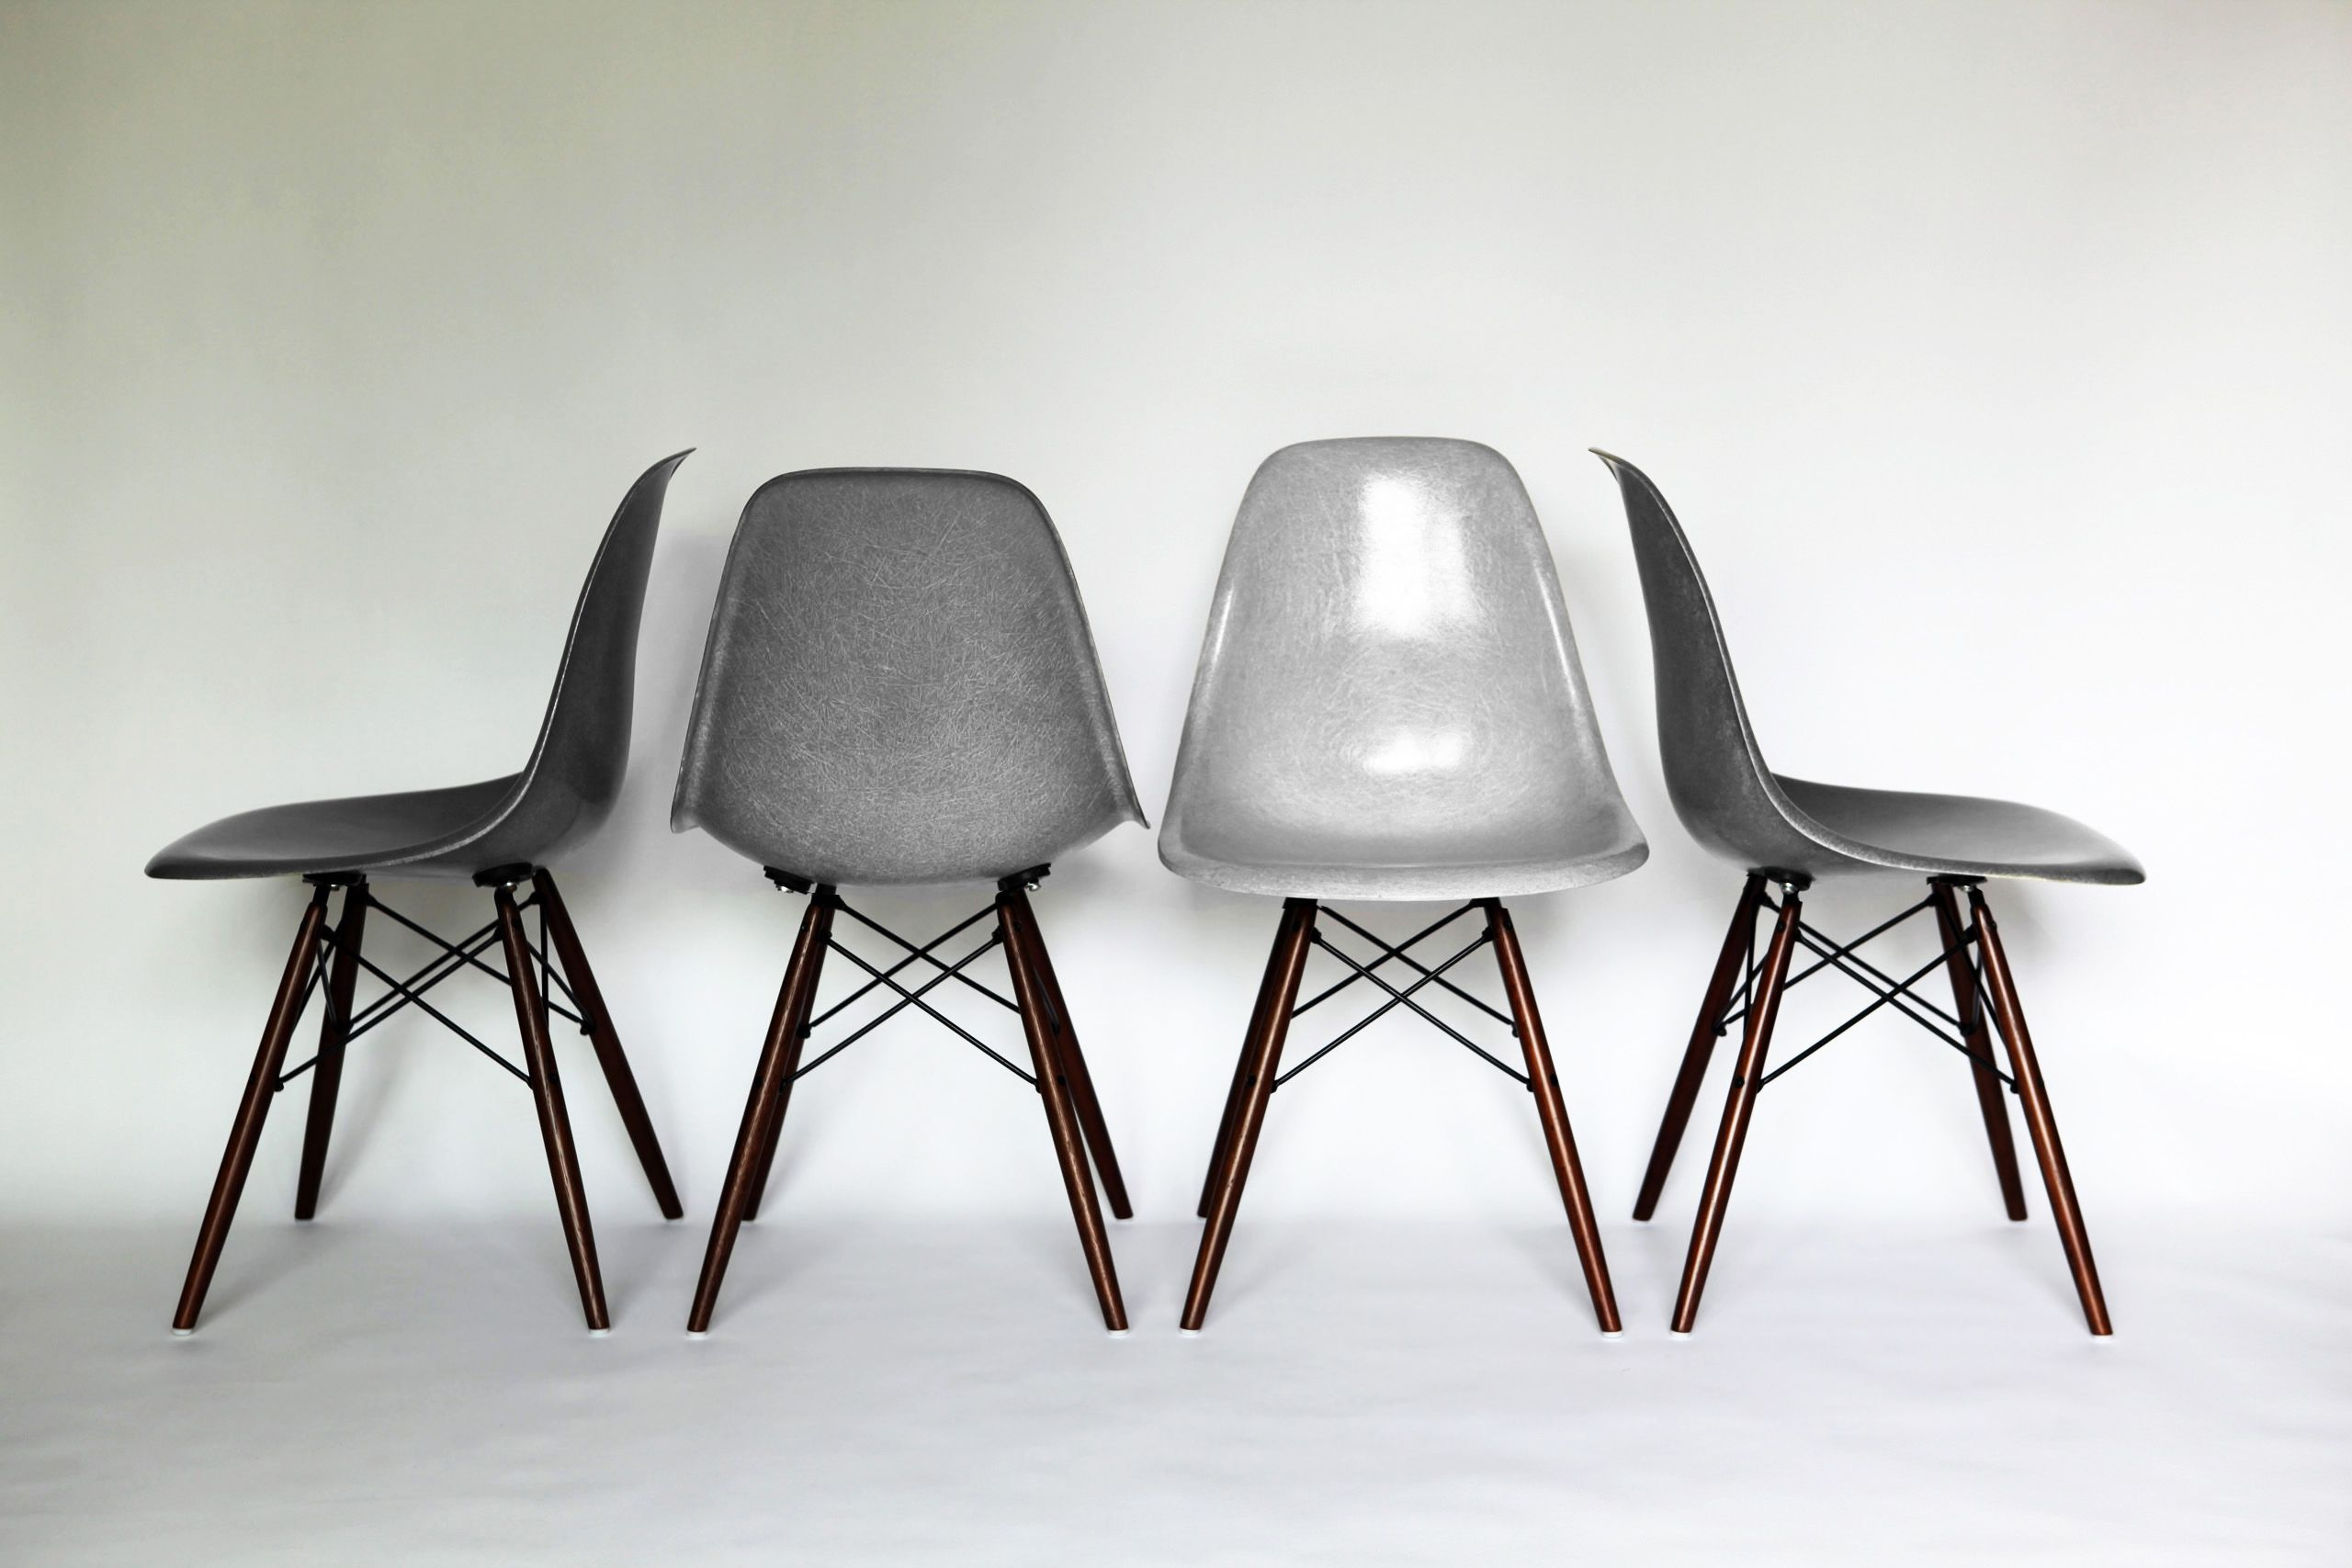 eames herman miller elephant hide grey chairs eames. Black Bedroom Furniture Sets. Home Design Ideas